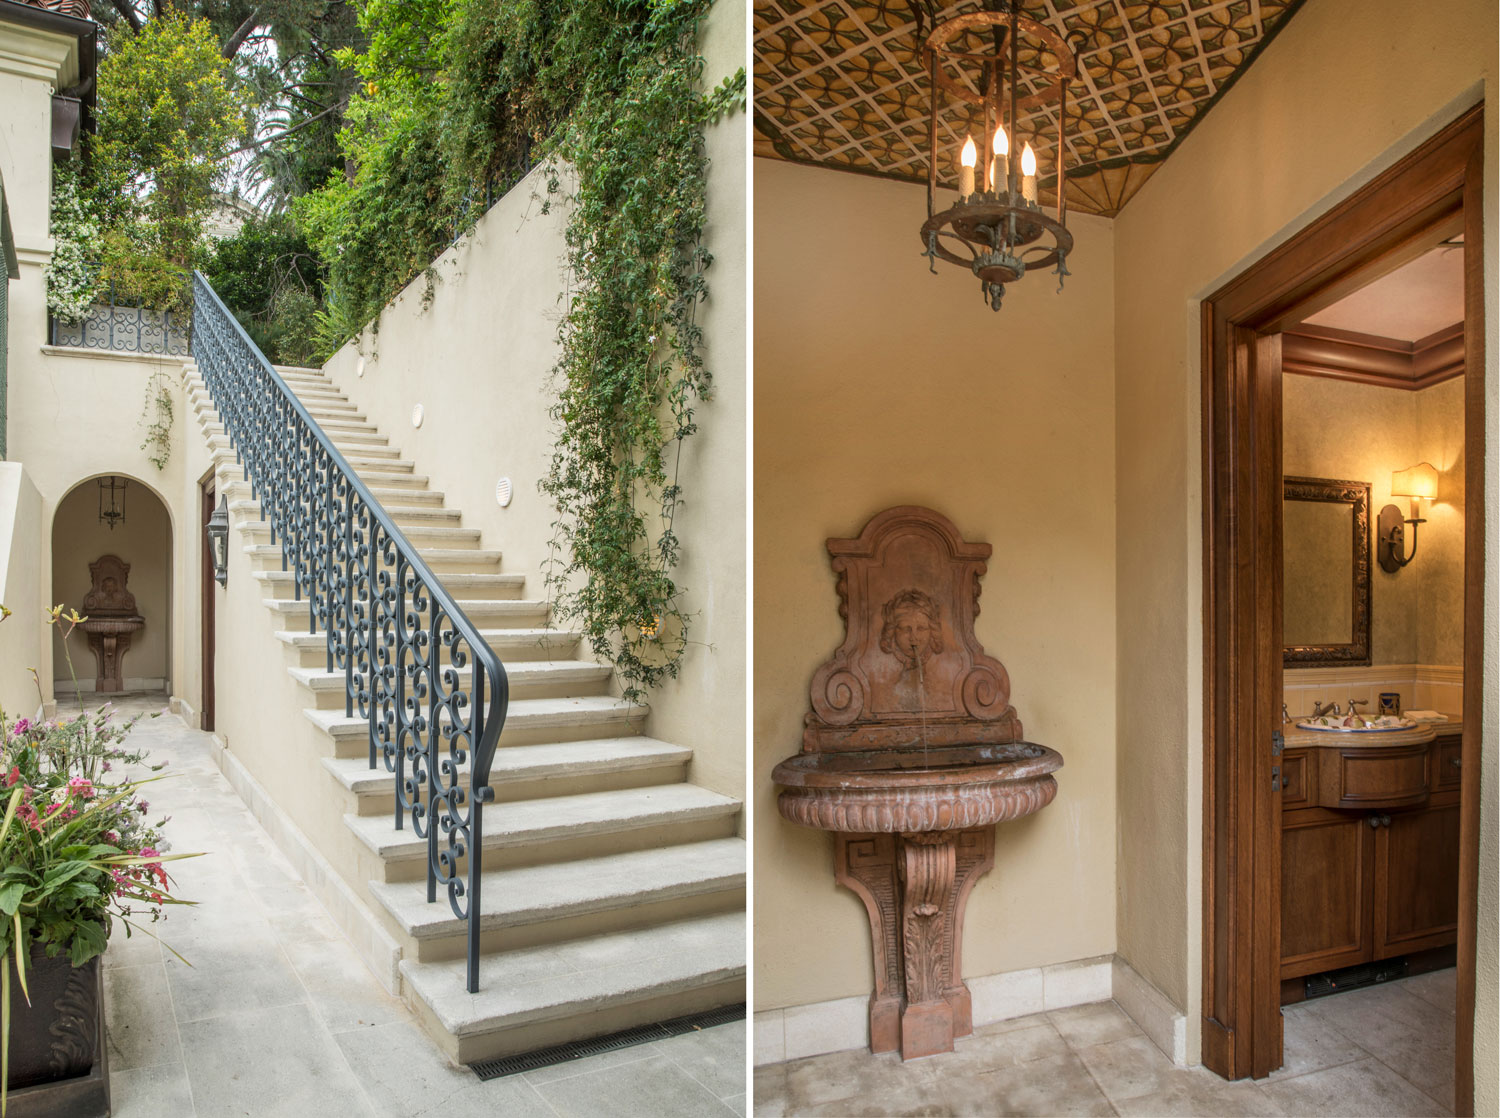 01-traditional-garden-iron-staircase-railing-powder-room-gary-drake-general-contractor.jpg